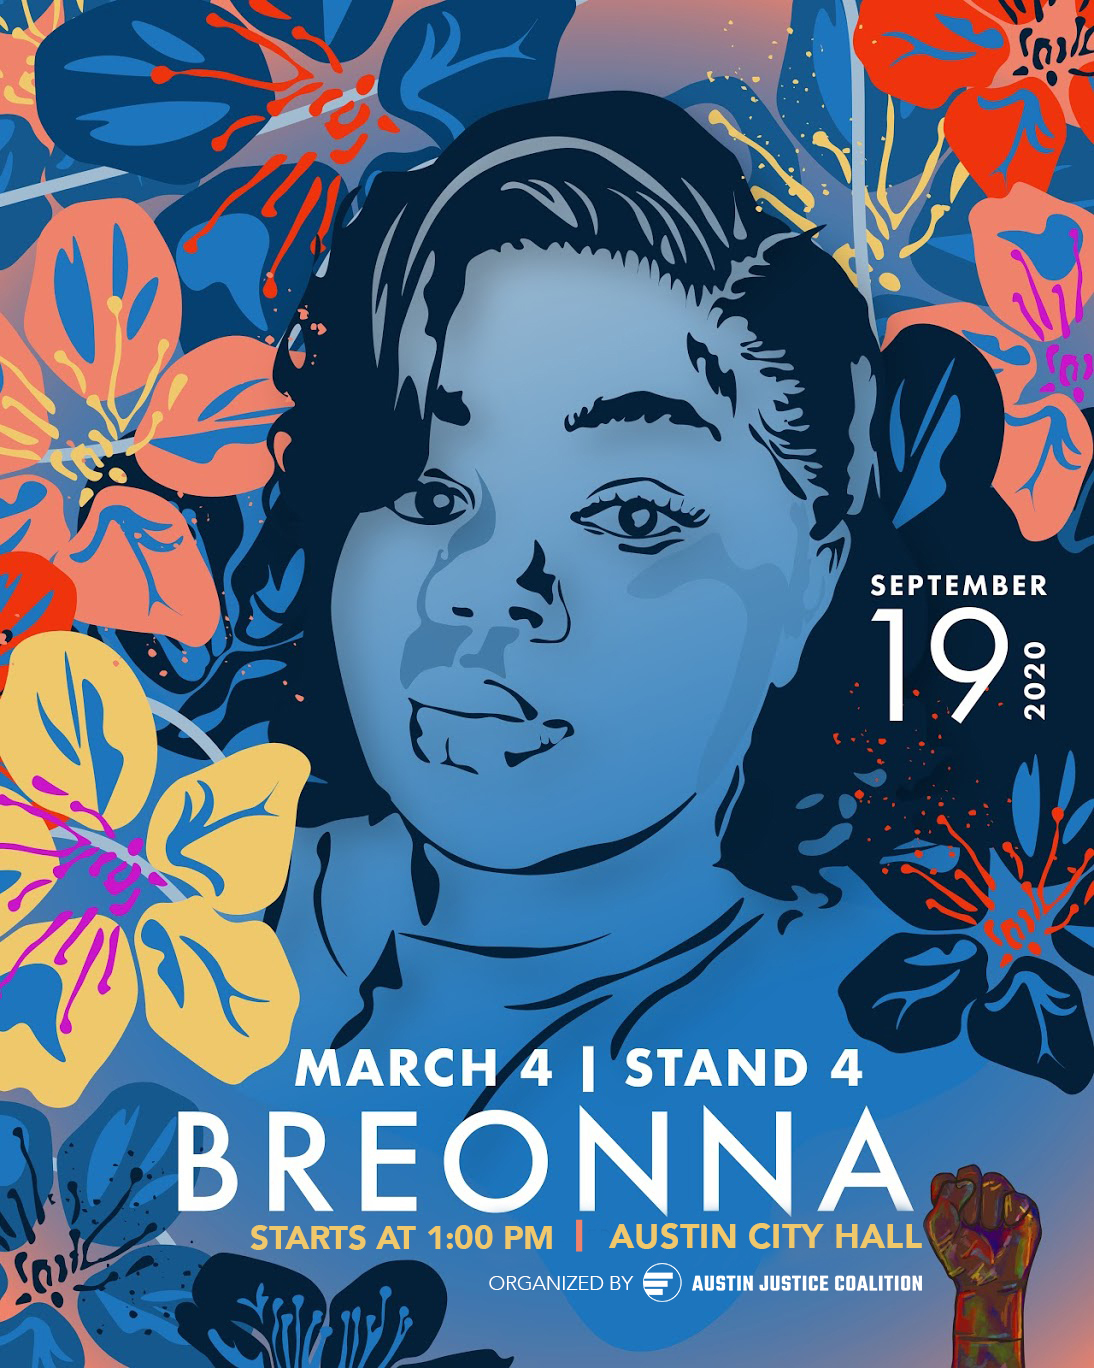 March 4 Stand 4 Breonna Taylor March Austin Justice Coalition